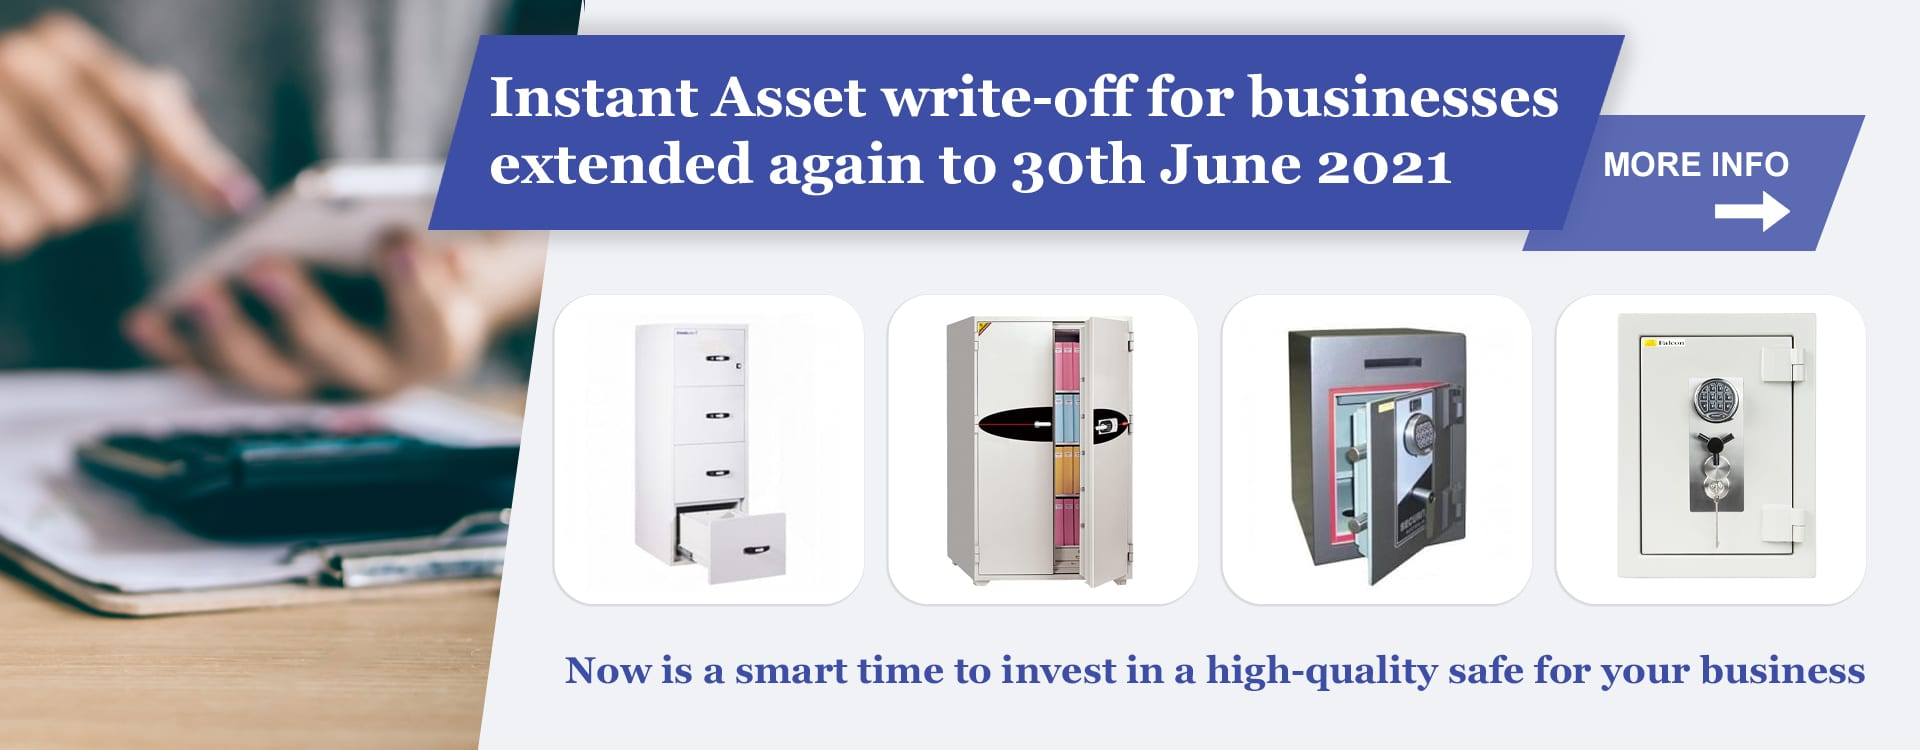 invest in a safe to get instant asset write-off 2021